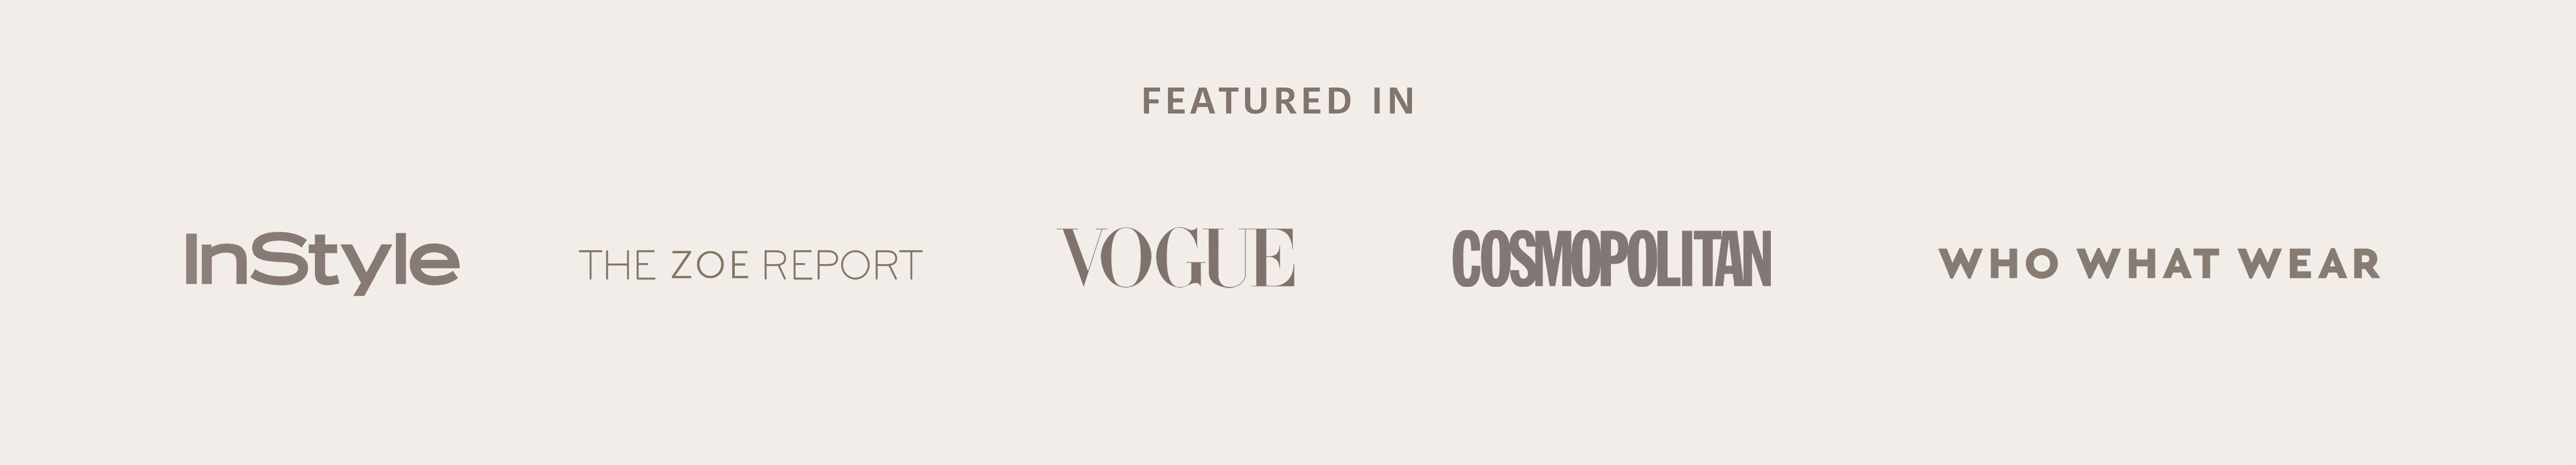 featured in InStyle, The Zoe report, Vogue, Cosmopolitan, Who what wear